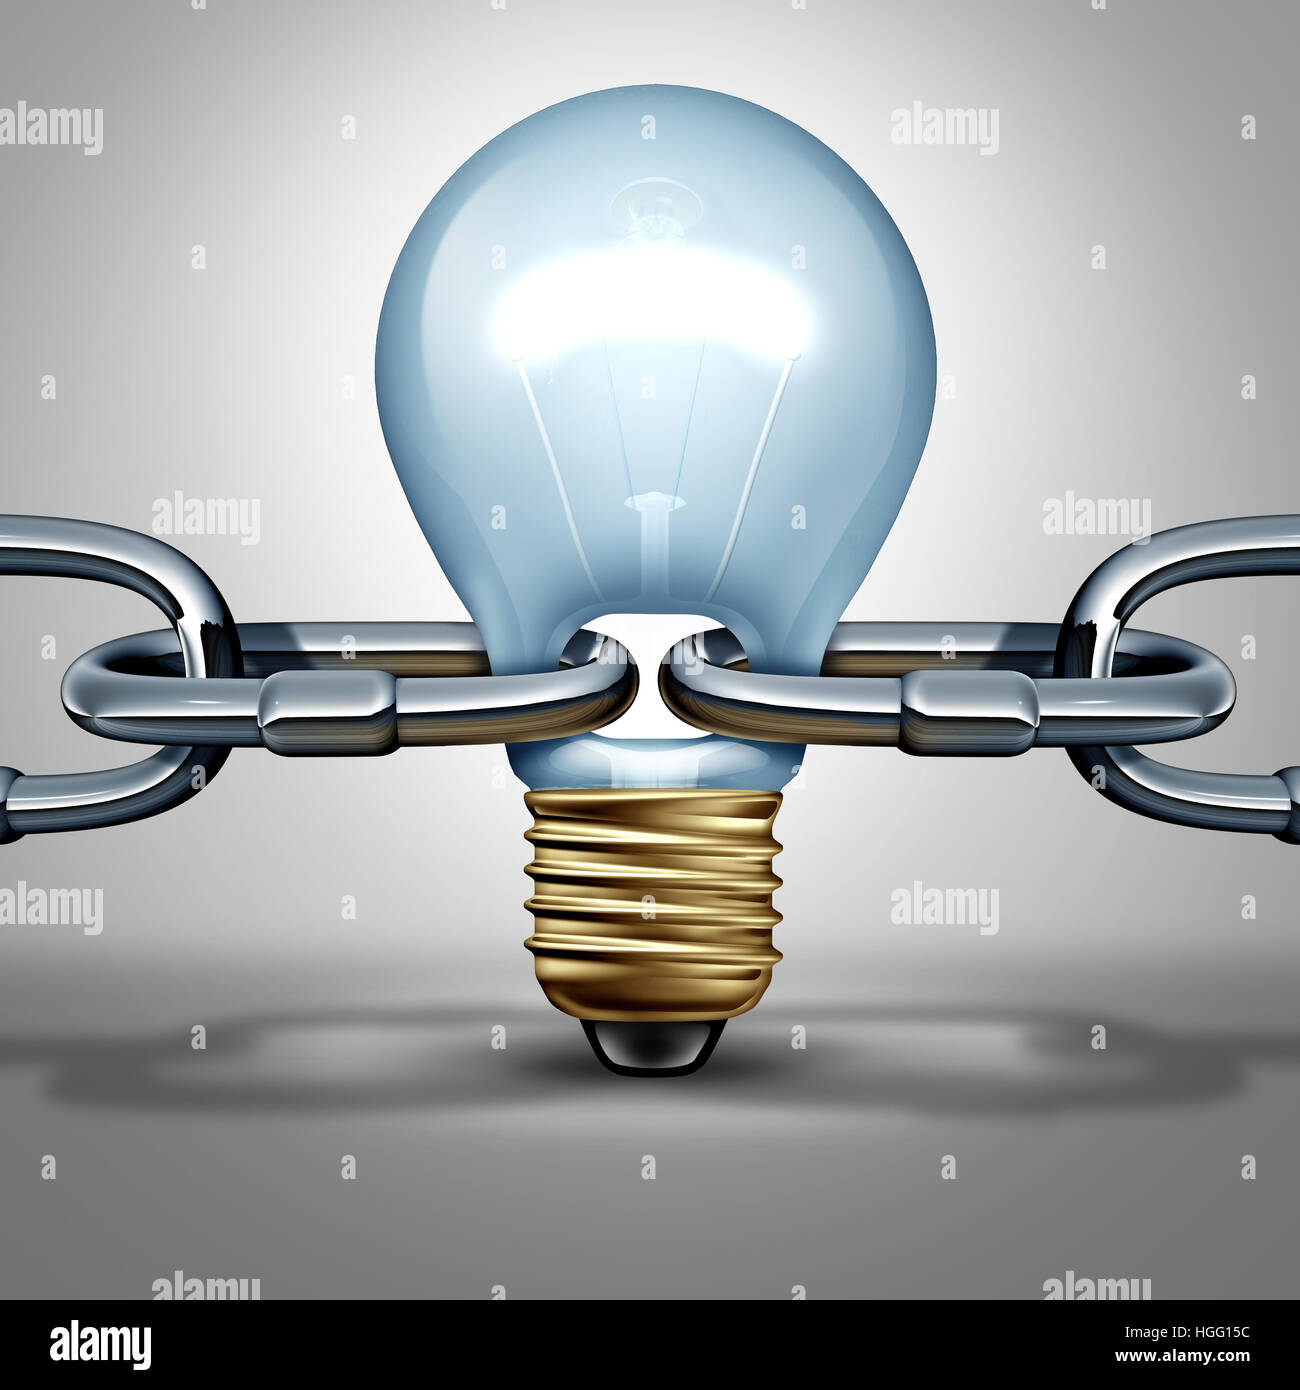 Idea chain concept as an innovation strength and inventive intelligence connection icon or reliable thinking network - Stock Image